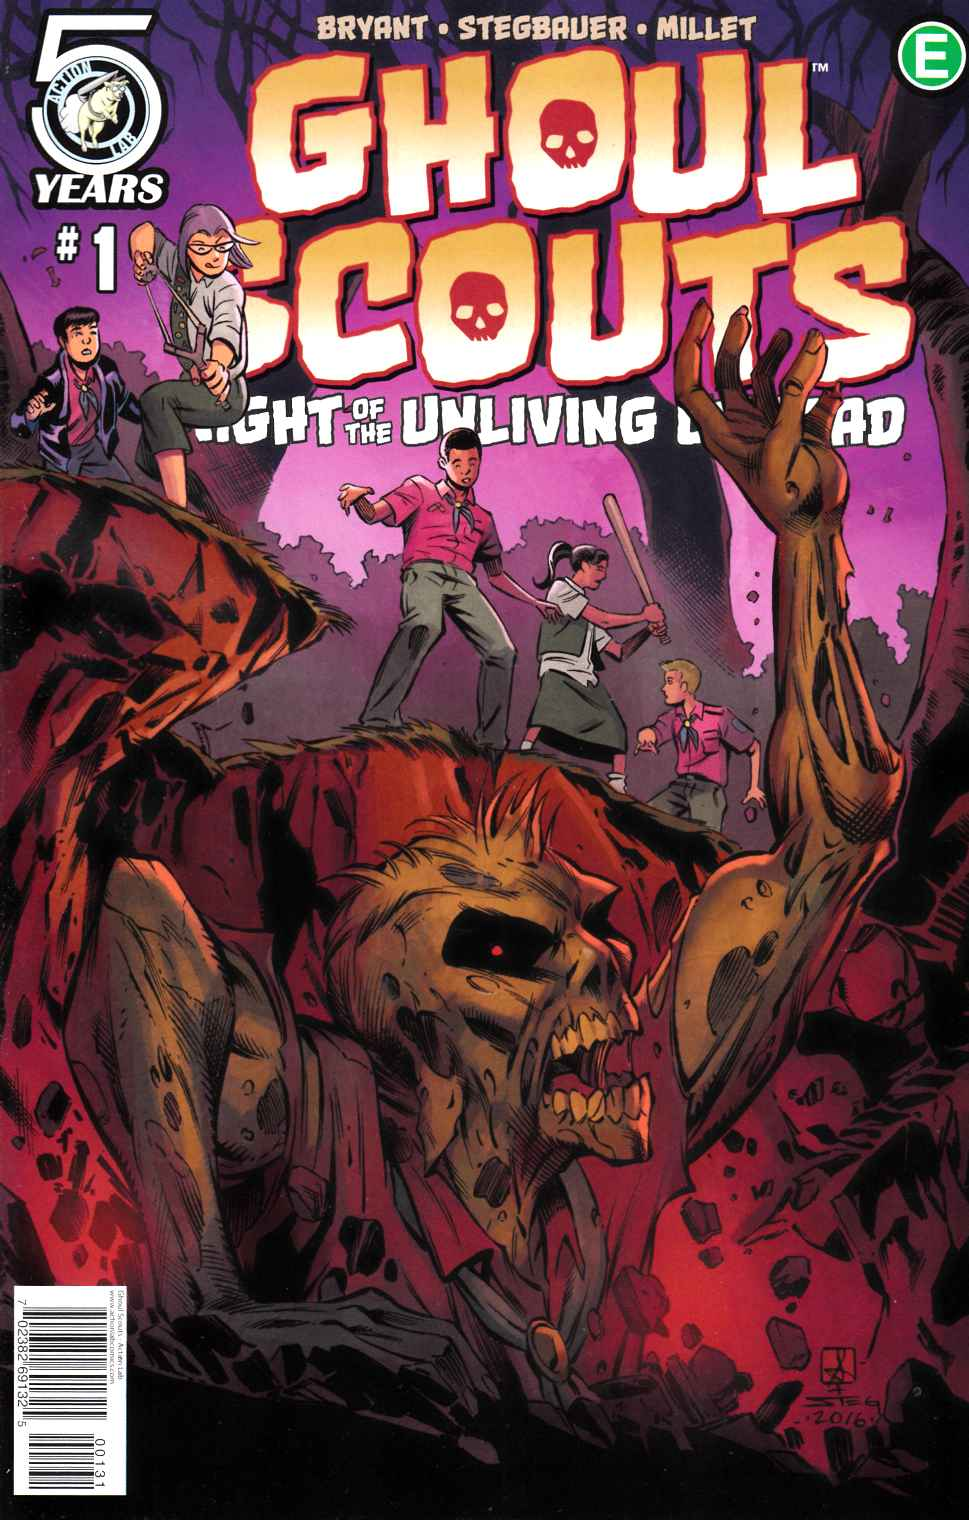 Ghoul Scouts Night of the Unliving Undead #1 Cover C [Action Lab Comic] THUMBNAIL